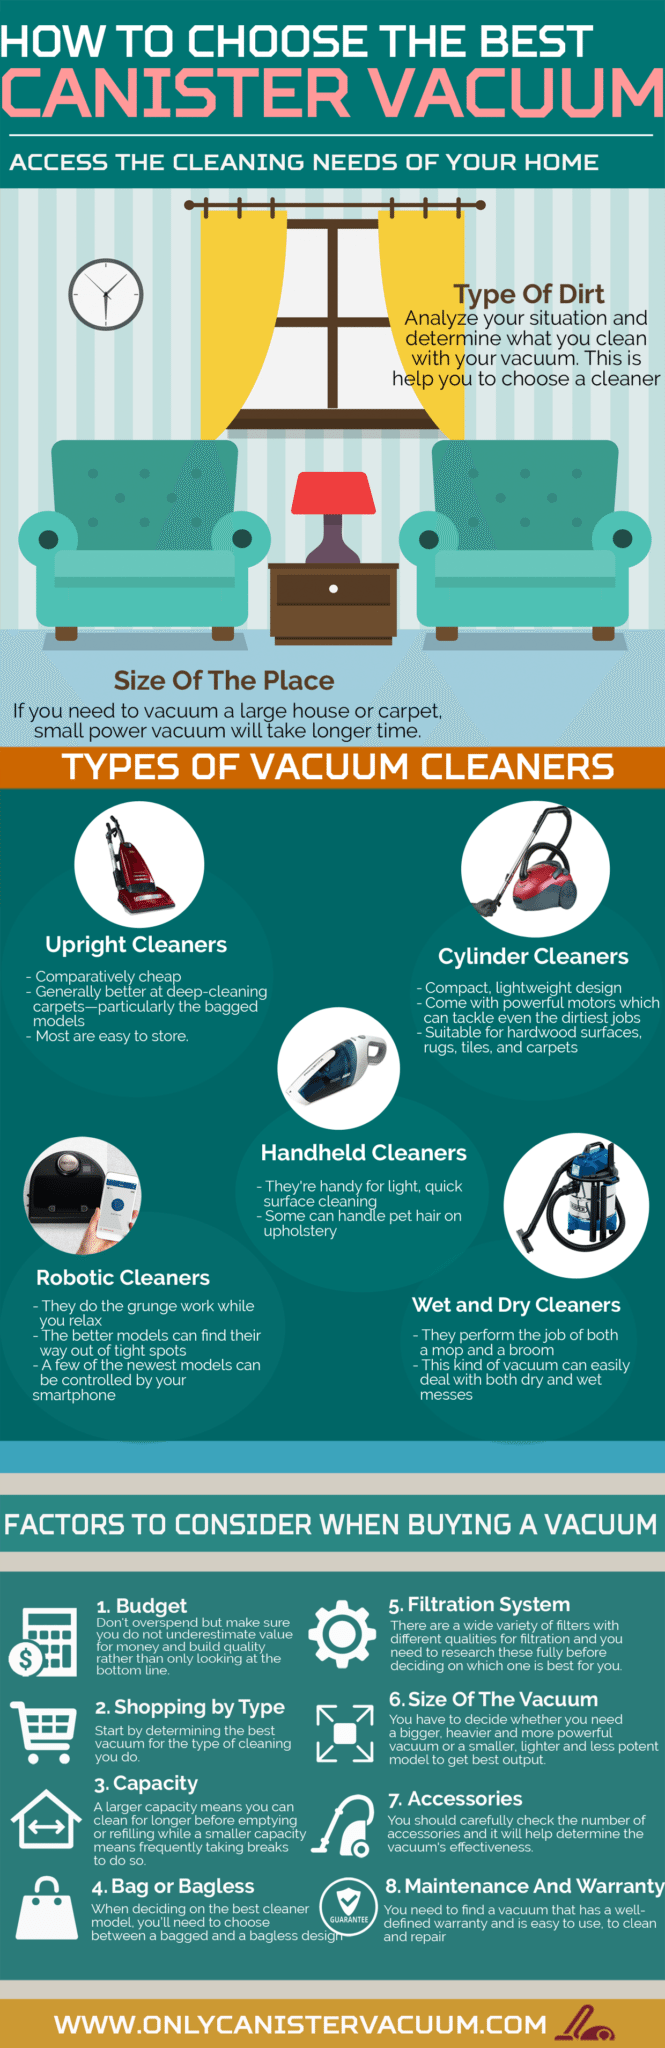 Top Canister Vacuum Buying Guide by onlycanistervacuum.com